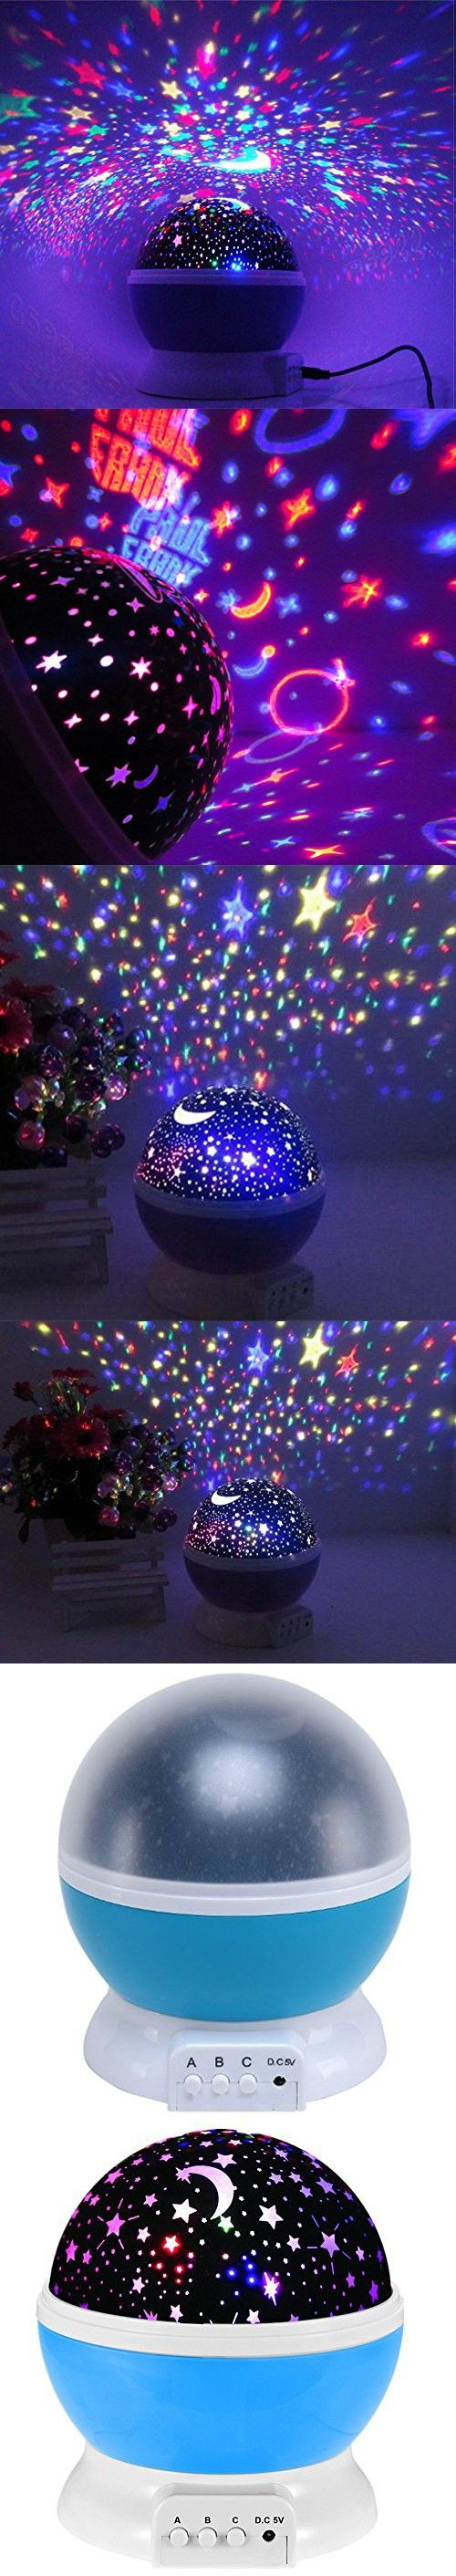 Bedroom planetarium projector for kids - Star Projector Galaxy Nightlight Starry Projection Lamp Space Night Light Moon And Stars Sky Ceiling Projector